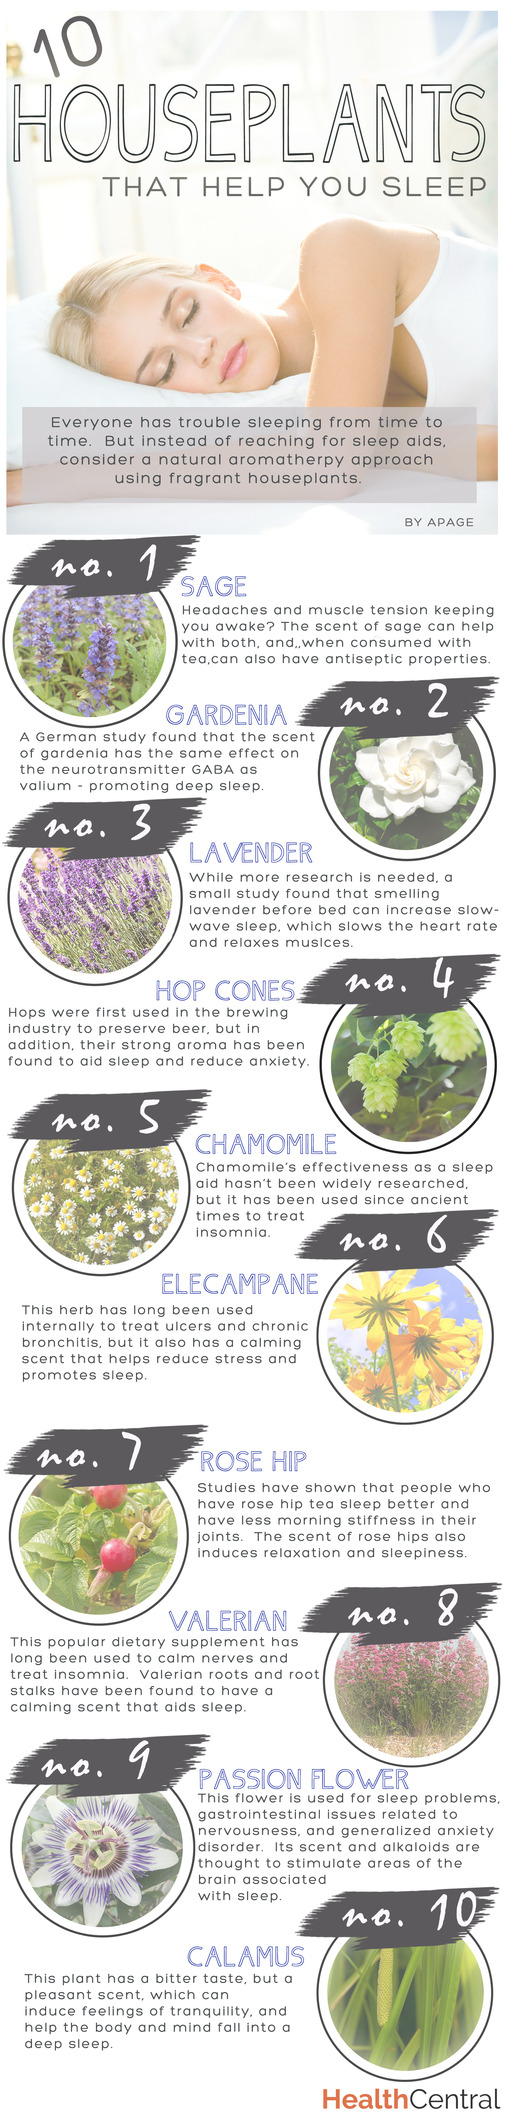 10 Houseplants For Getting Better Sleep Infographic